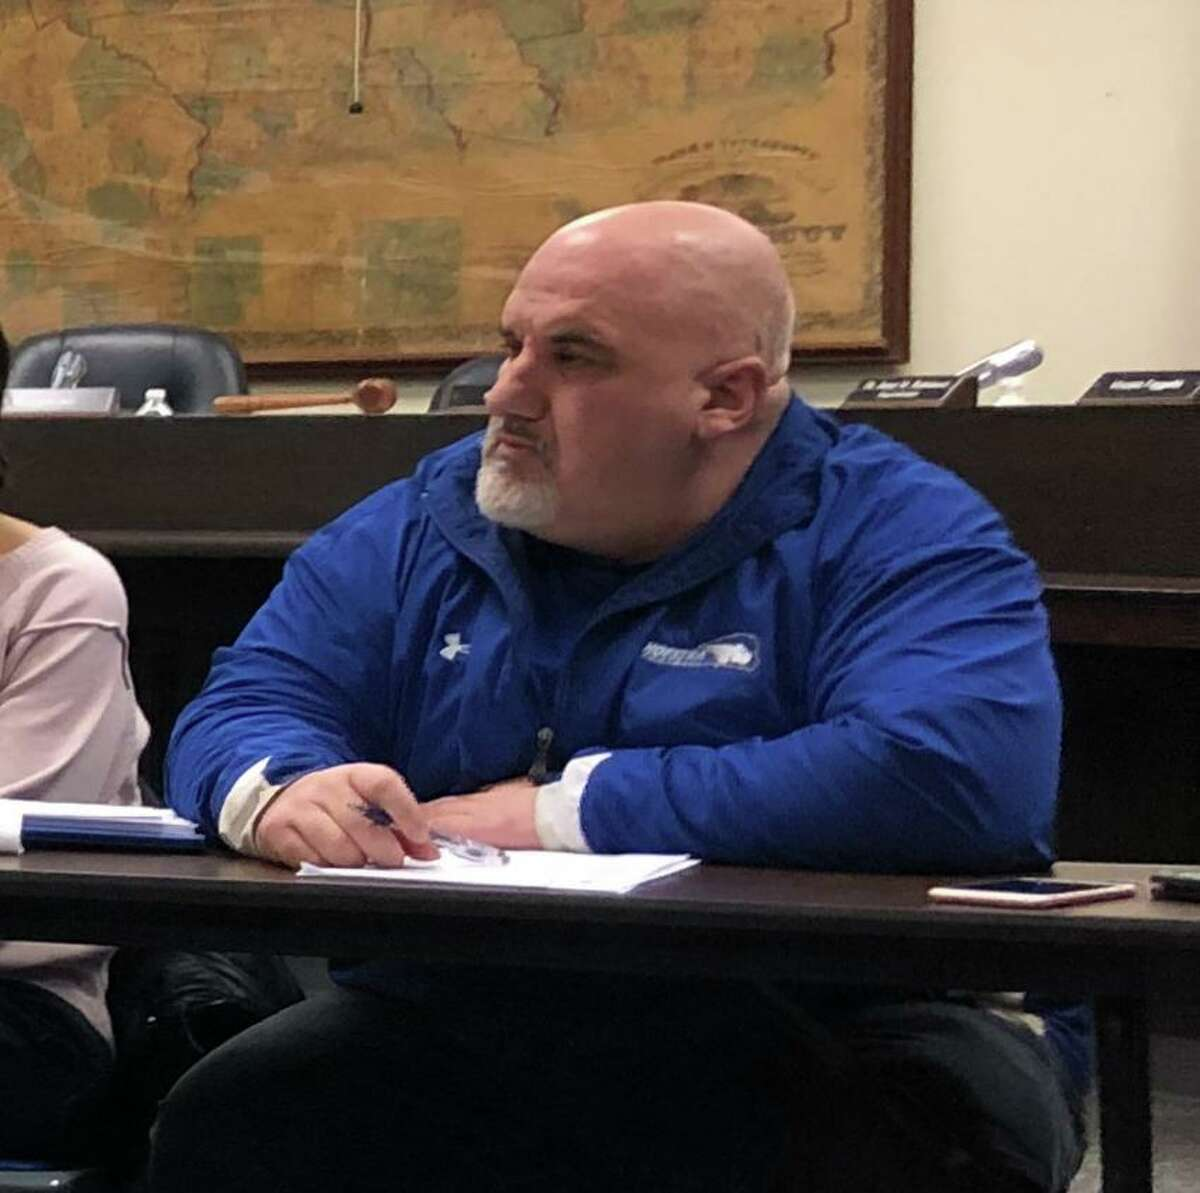 Robert DeLorenzo at a 2019 meeting of the Stratford Board of Education